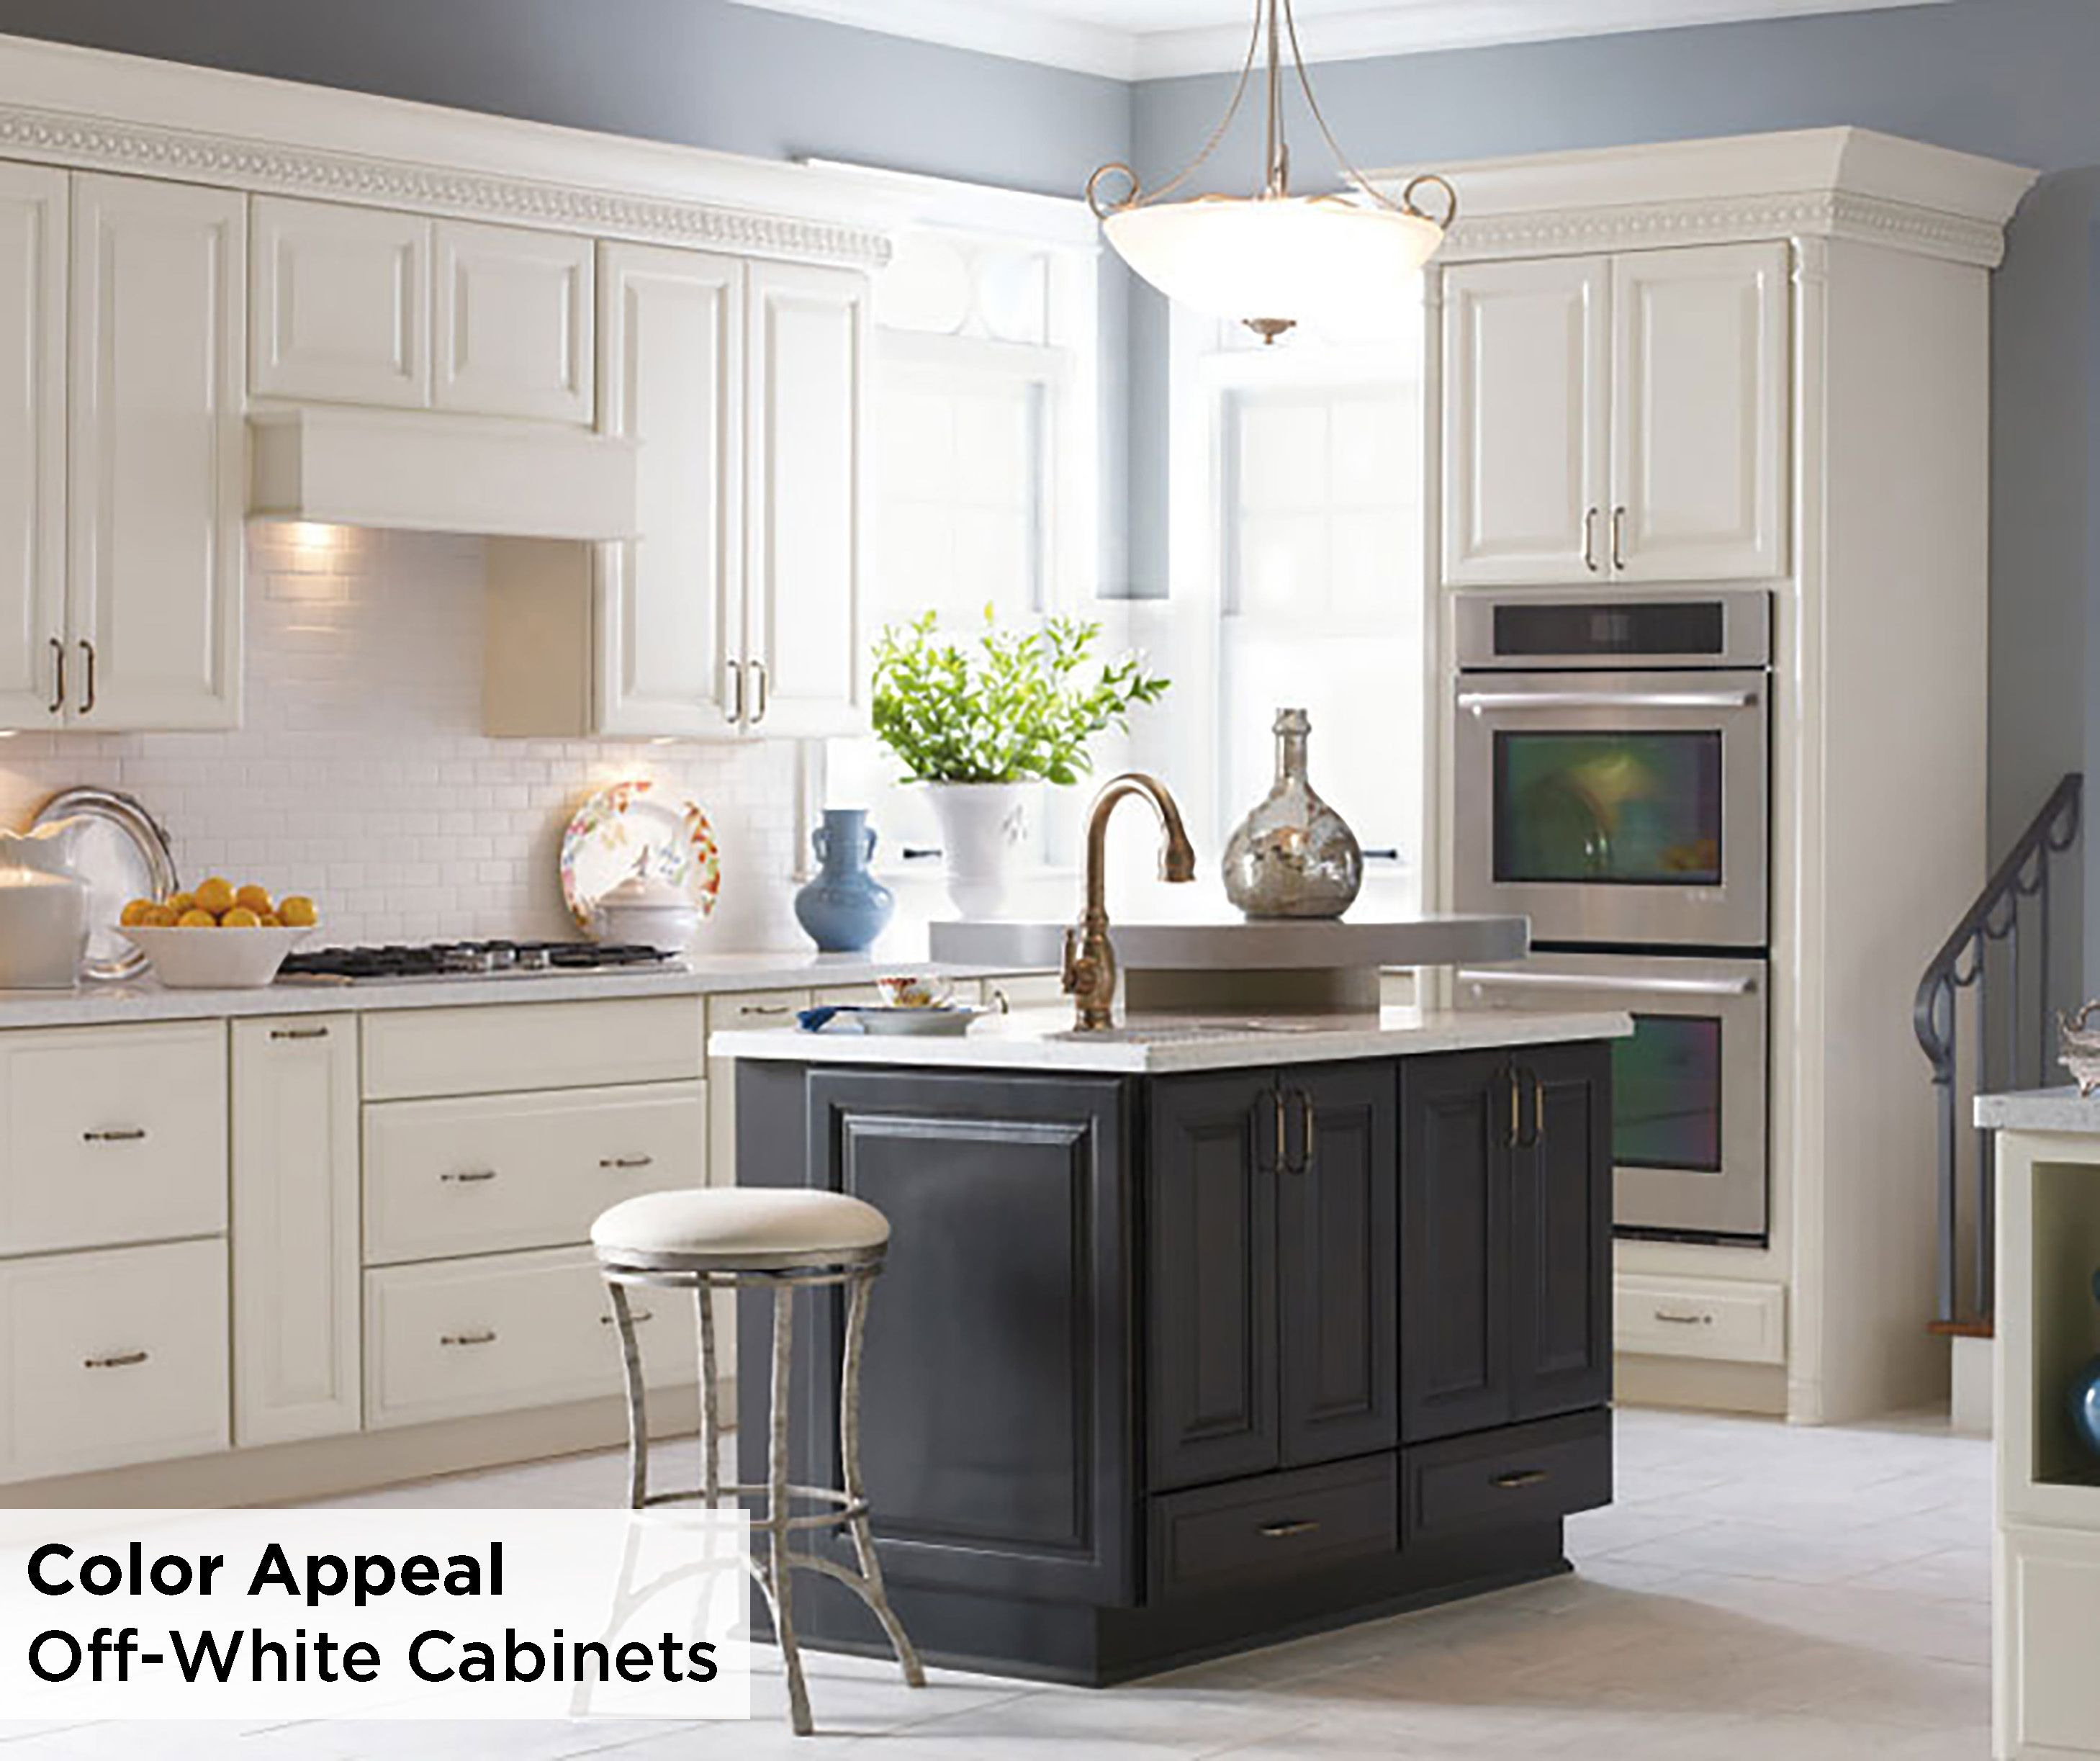 Best While White Kitchens May Be A Fan Favorite These Off 400 x 300